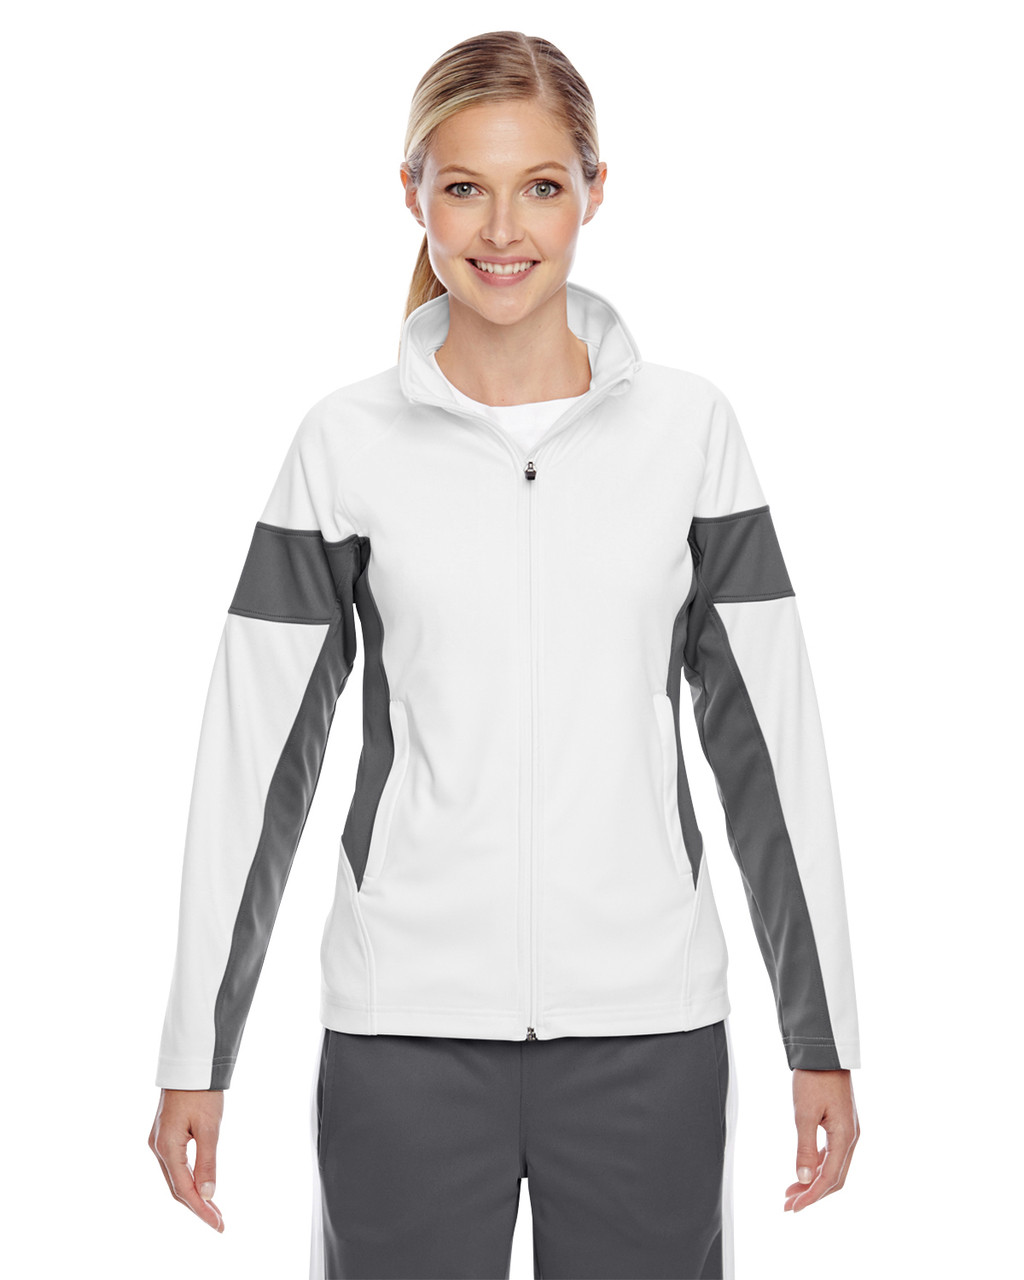 White/Graphite - TT34W Team 365 Ladies' Elite Performance Full-Zip Jacket